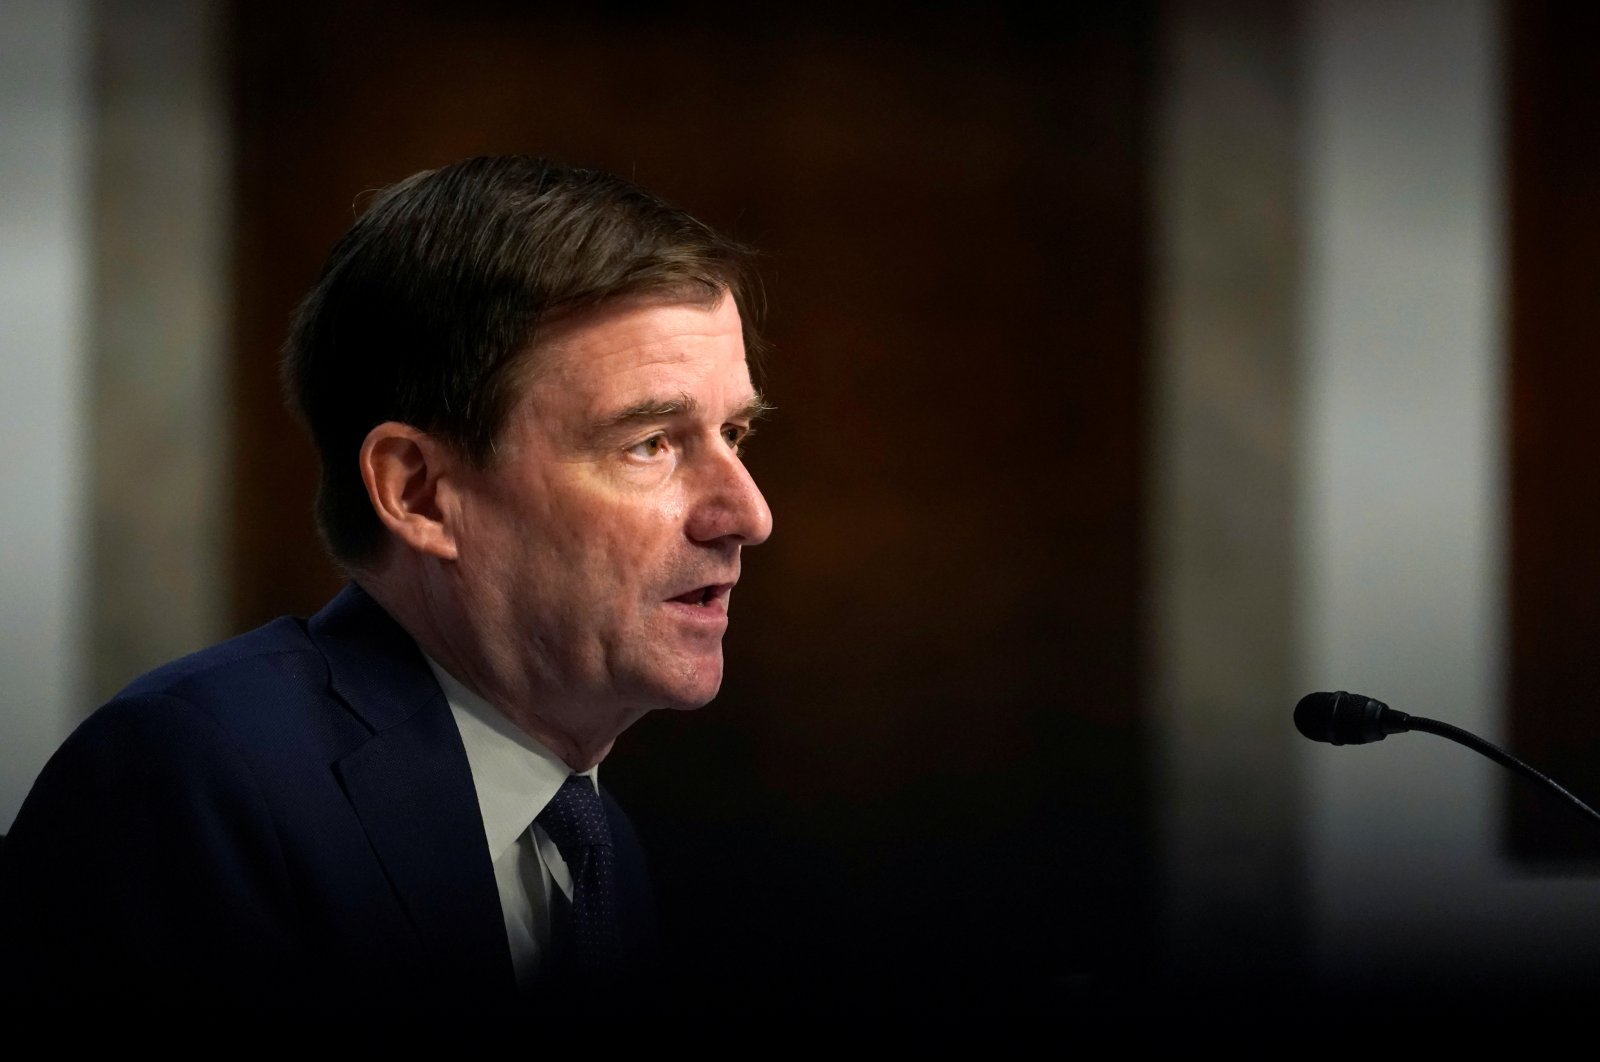 Under Secretary for Political Affairs David Hale testifies before the Senate Foreign Relations Committee during a hearing on U.S. Policy in the Middle East, on Capitol Hill in Washington, DC, U.S., Sept. 24, 2020. (REUTERS Photo)